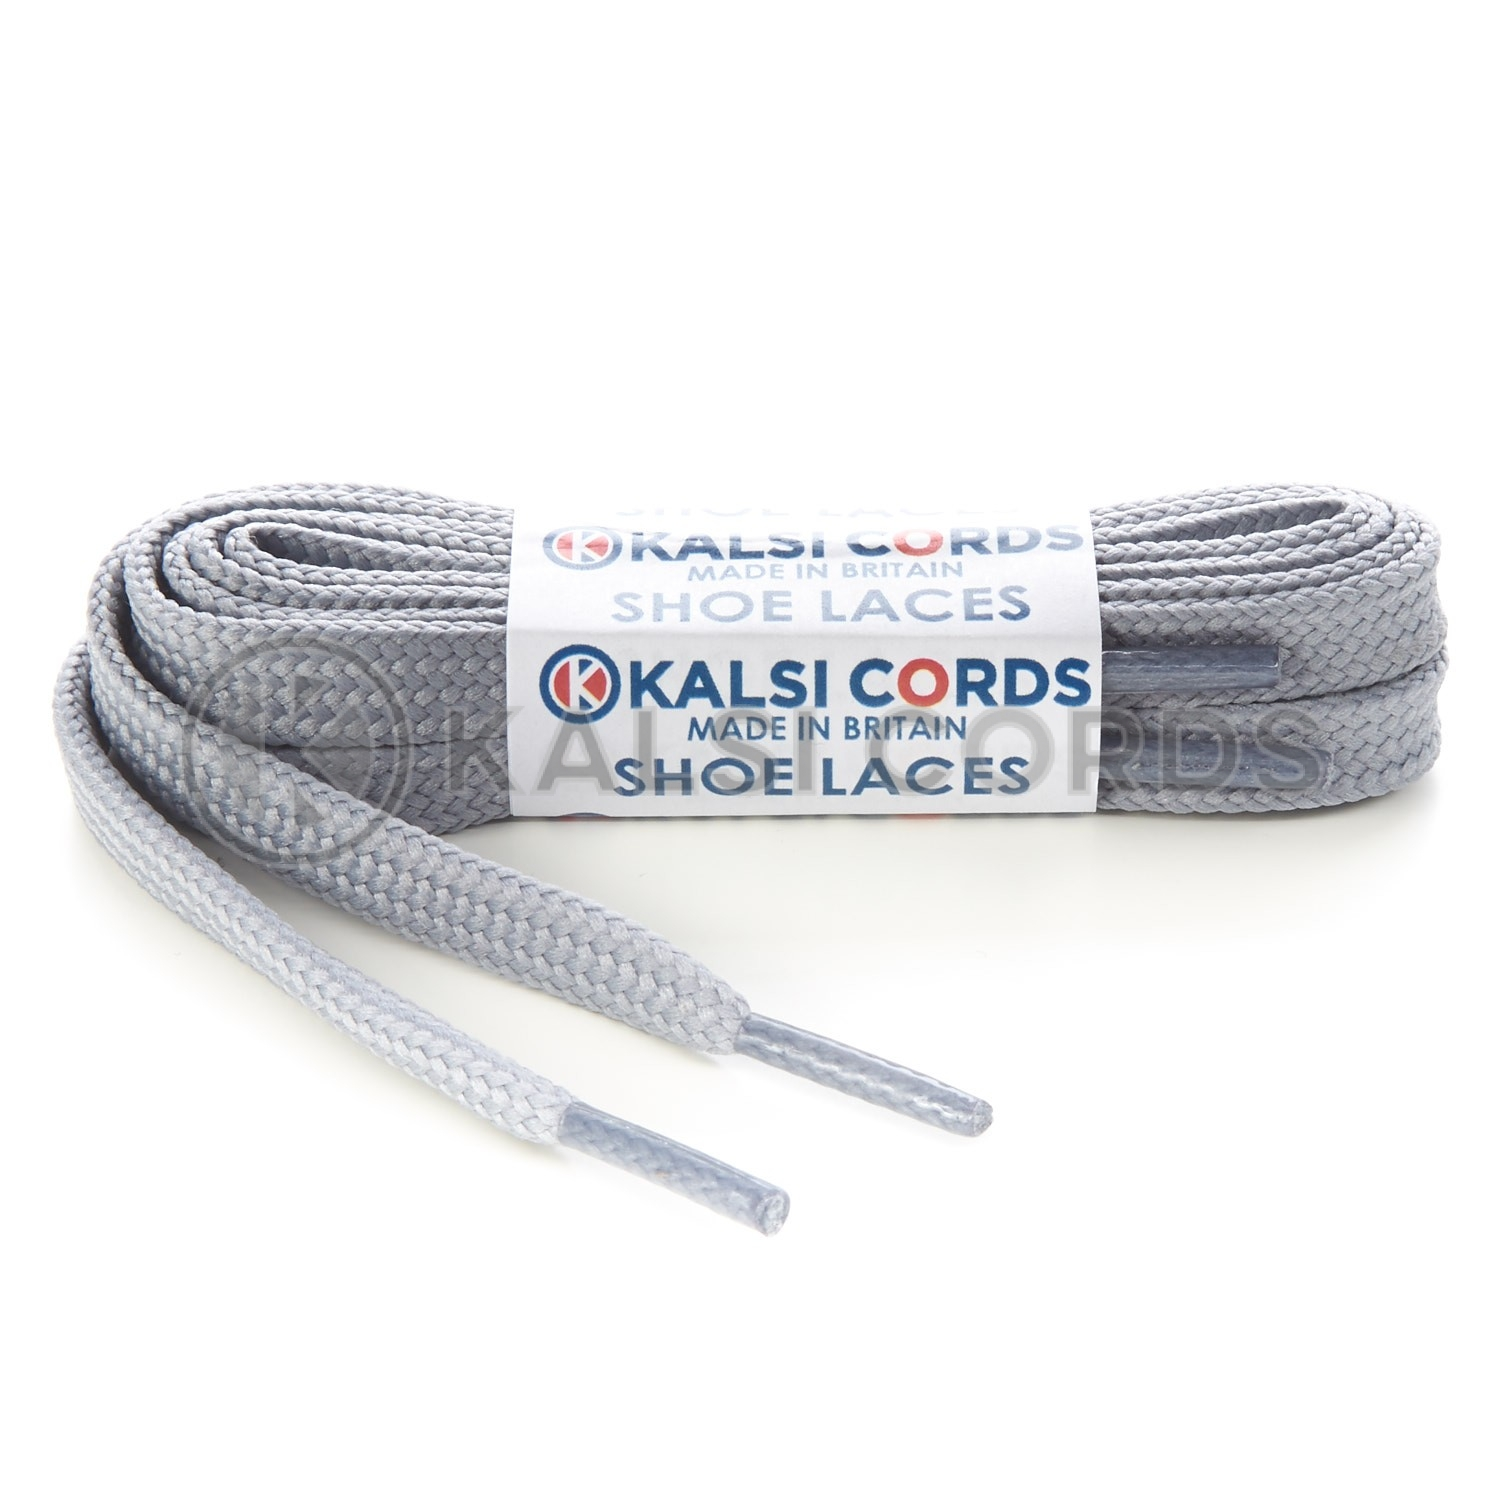 R1176 9mm Flat Shoe Laces Tubular Frosted Silver PG654 Sports Trainers Boots Footwear Hoodies Joggers Drawstring Drawcord Braid